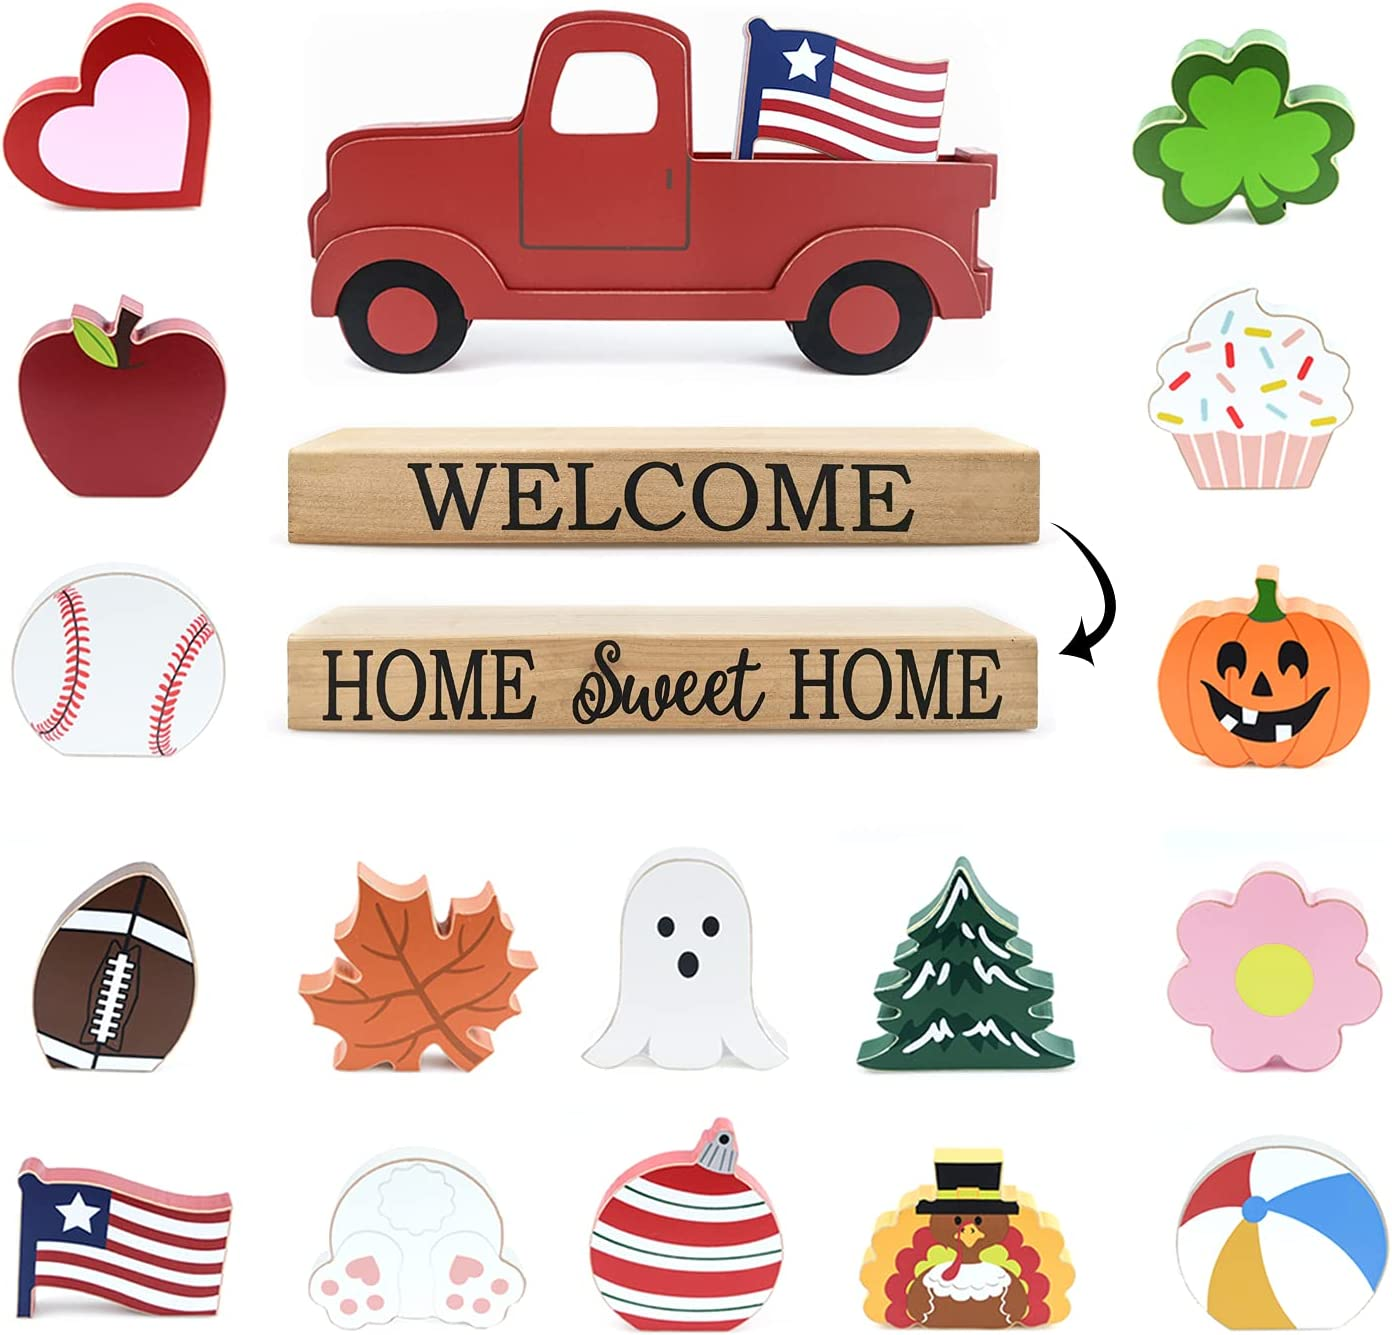 Winder Red Truck Decor Home Welcome Sign 2-Side Wood Block Seasonal Cutout Set Tabletop with Interchangeable 16-PC Icons for Spring 4th of July Halloween Christmas for Farmhouse Mantel Decor